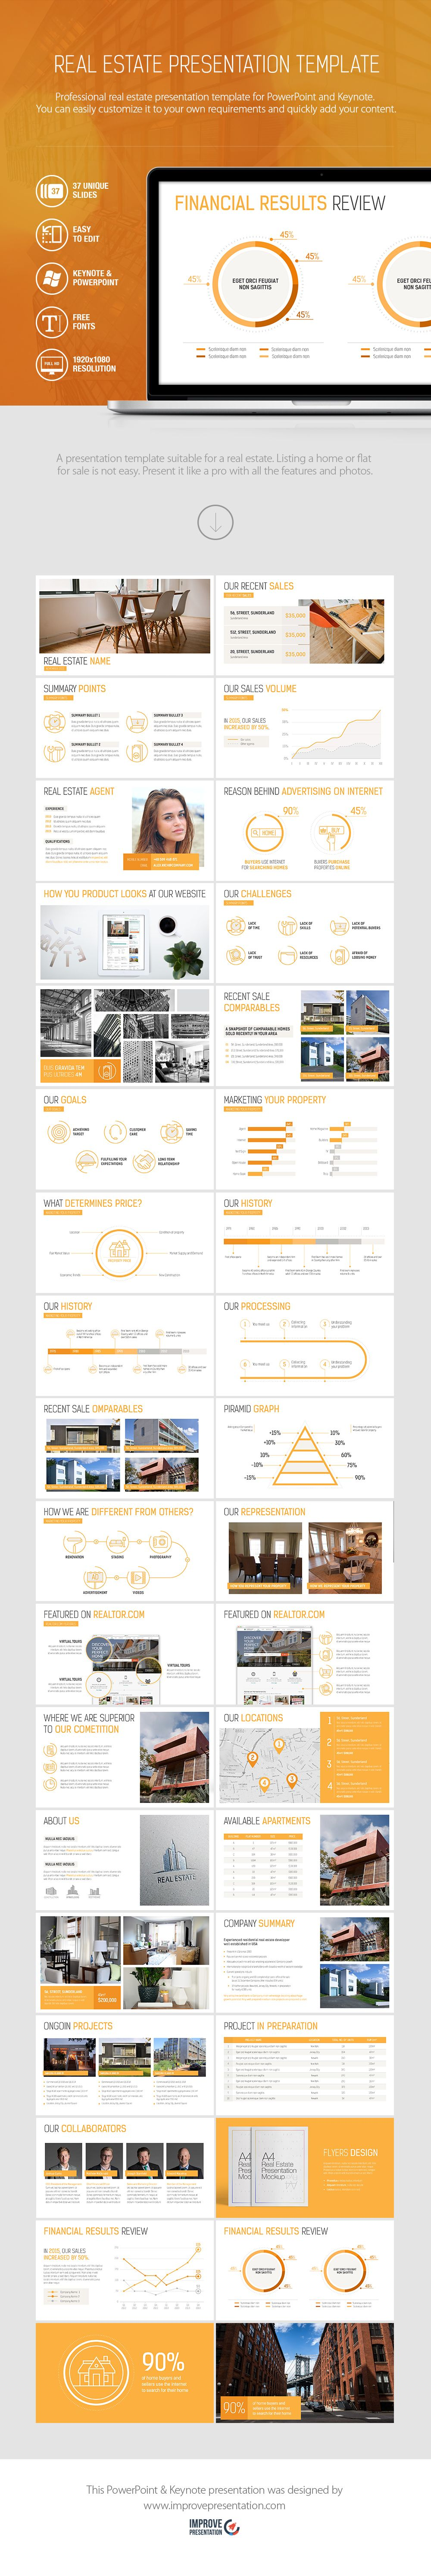 real estate presentation template top powerpoint templates